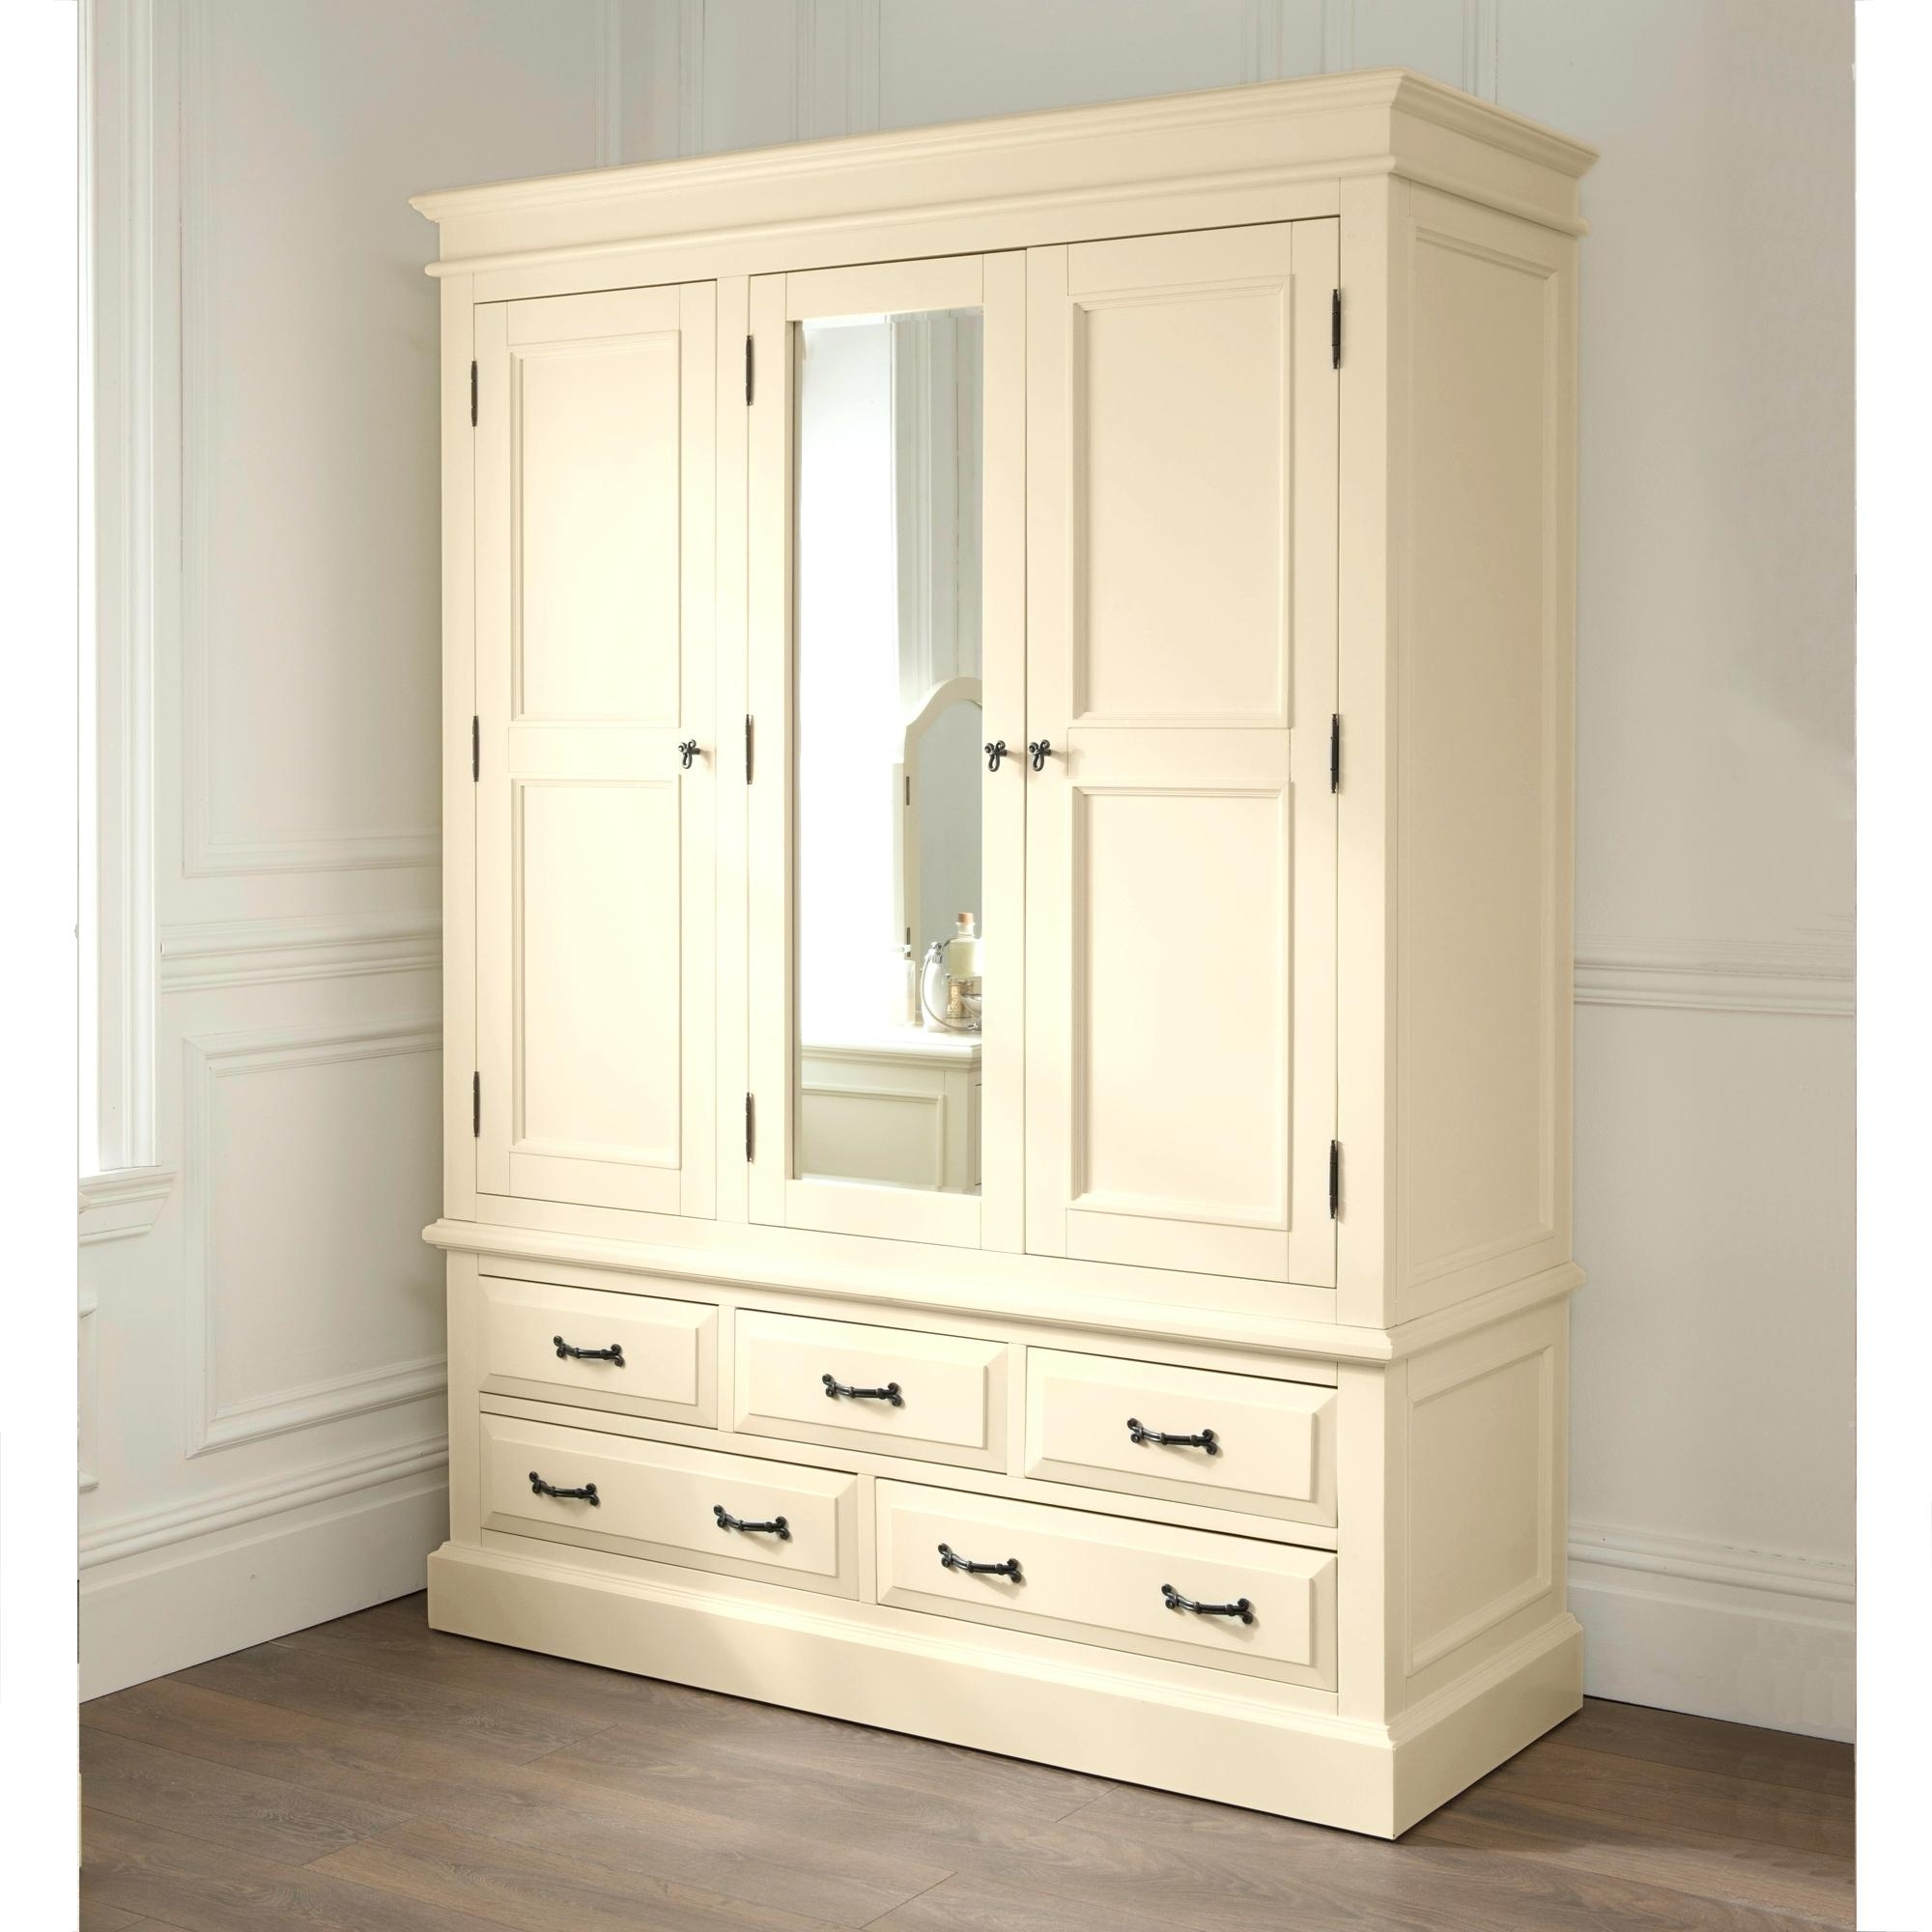 Trendy Small Wardrobes Pertaining To Furniture : Cloth Wardrobe Closet Small Wardrobe Cabinet Mens (View 13 of 15)